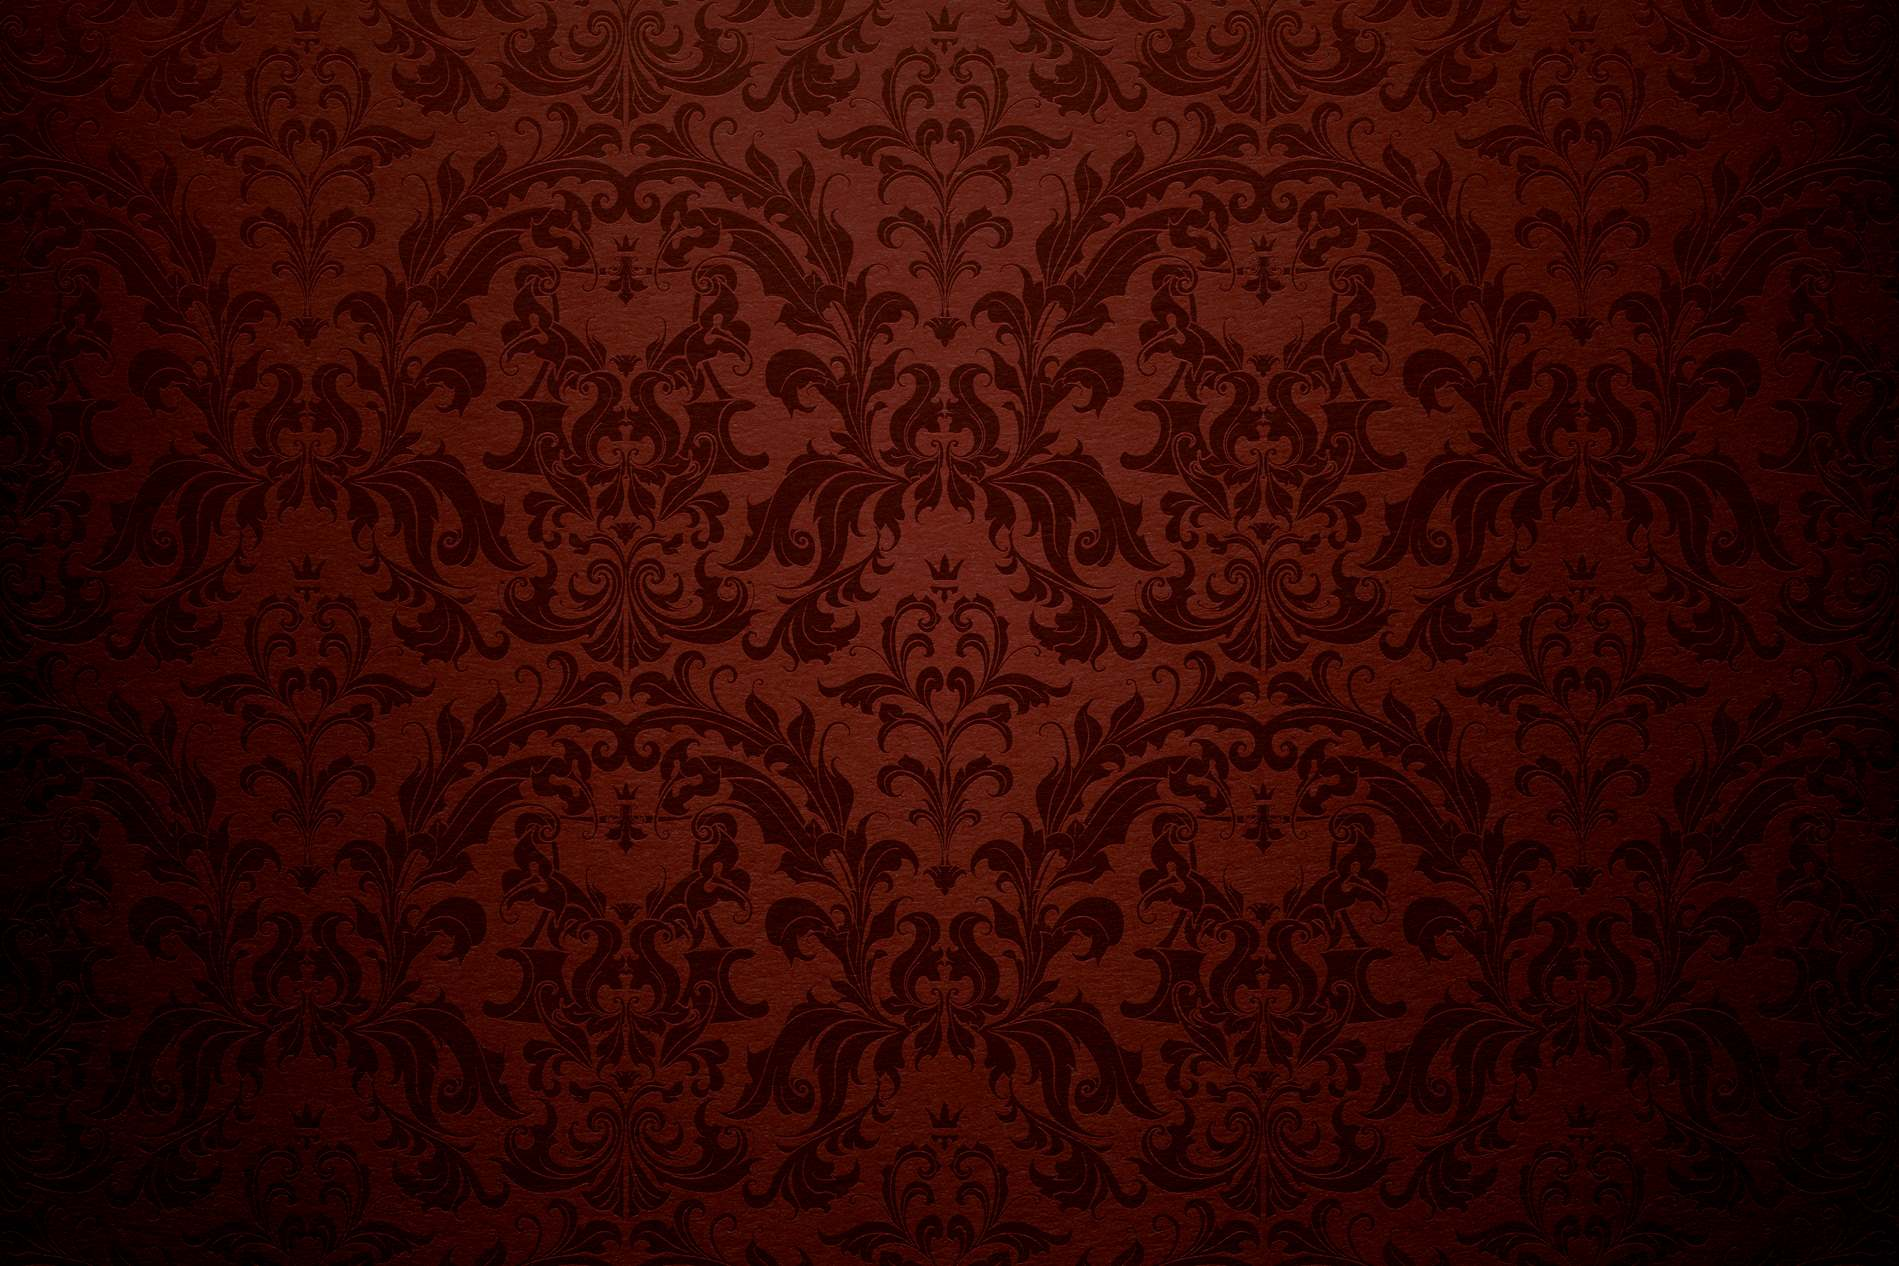 Dark red wall damask background photohdx for Red wallpaper designs for walls